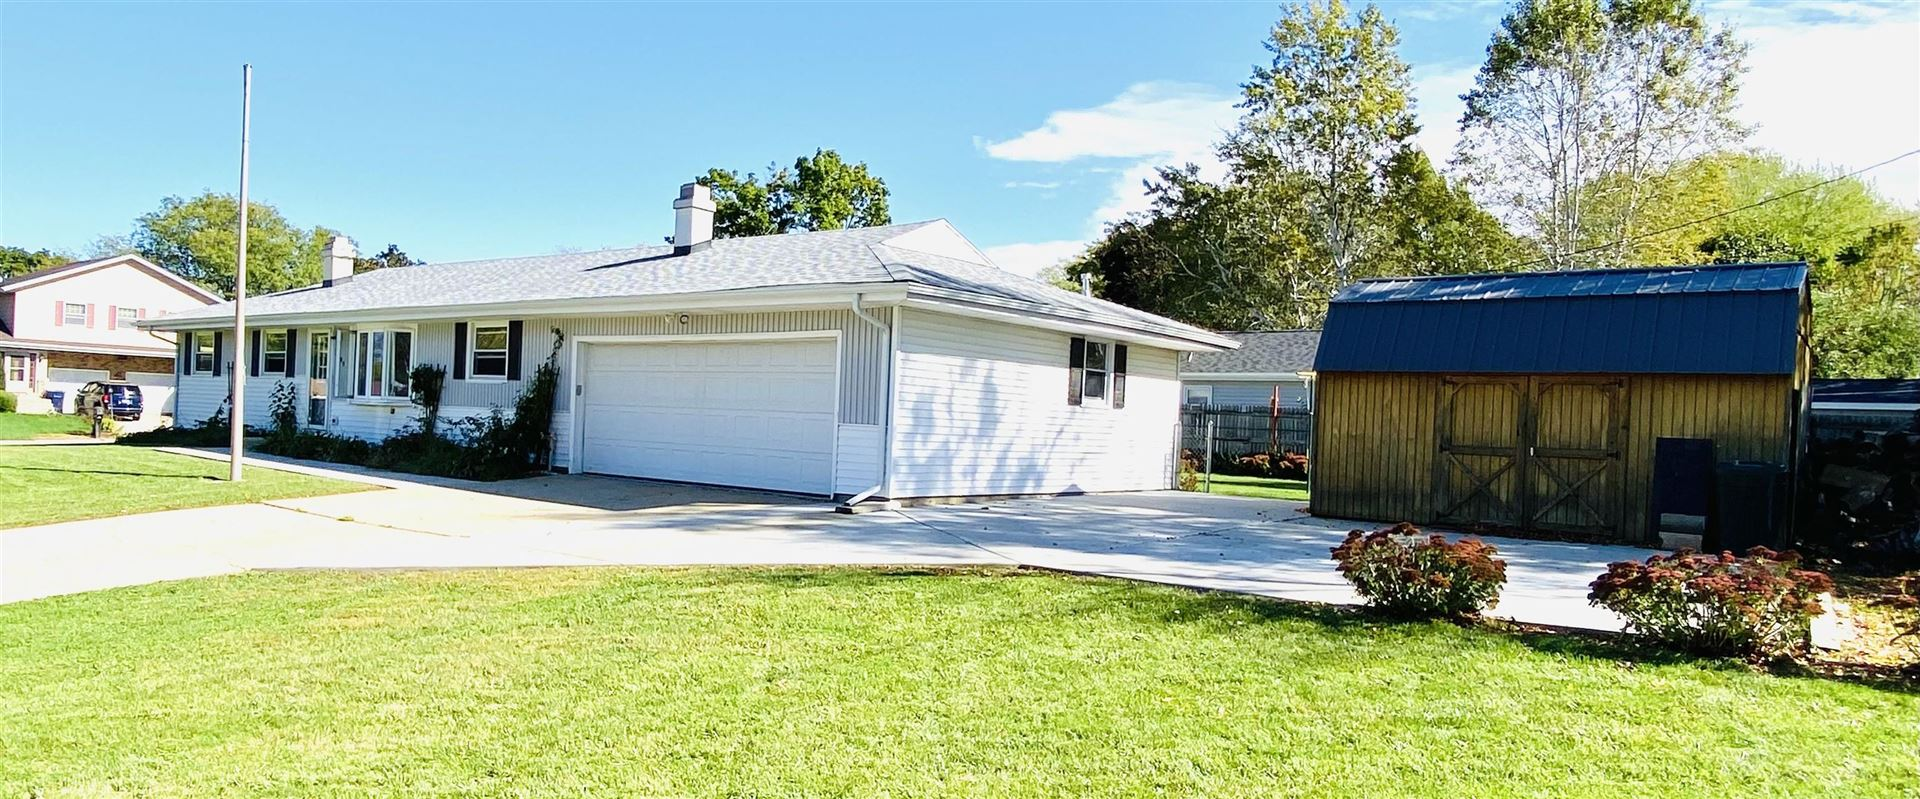 2109 River View Dr, Janesville, WI 53546 - #: 1922330